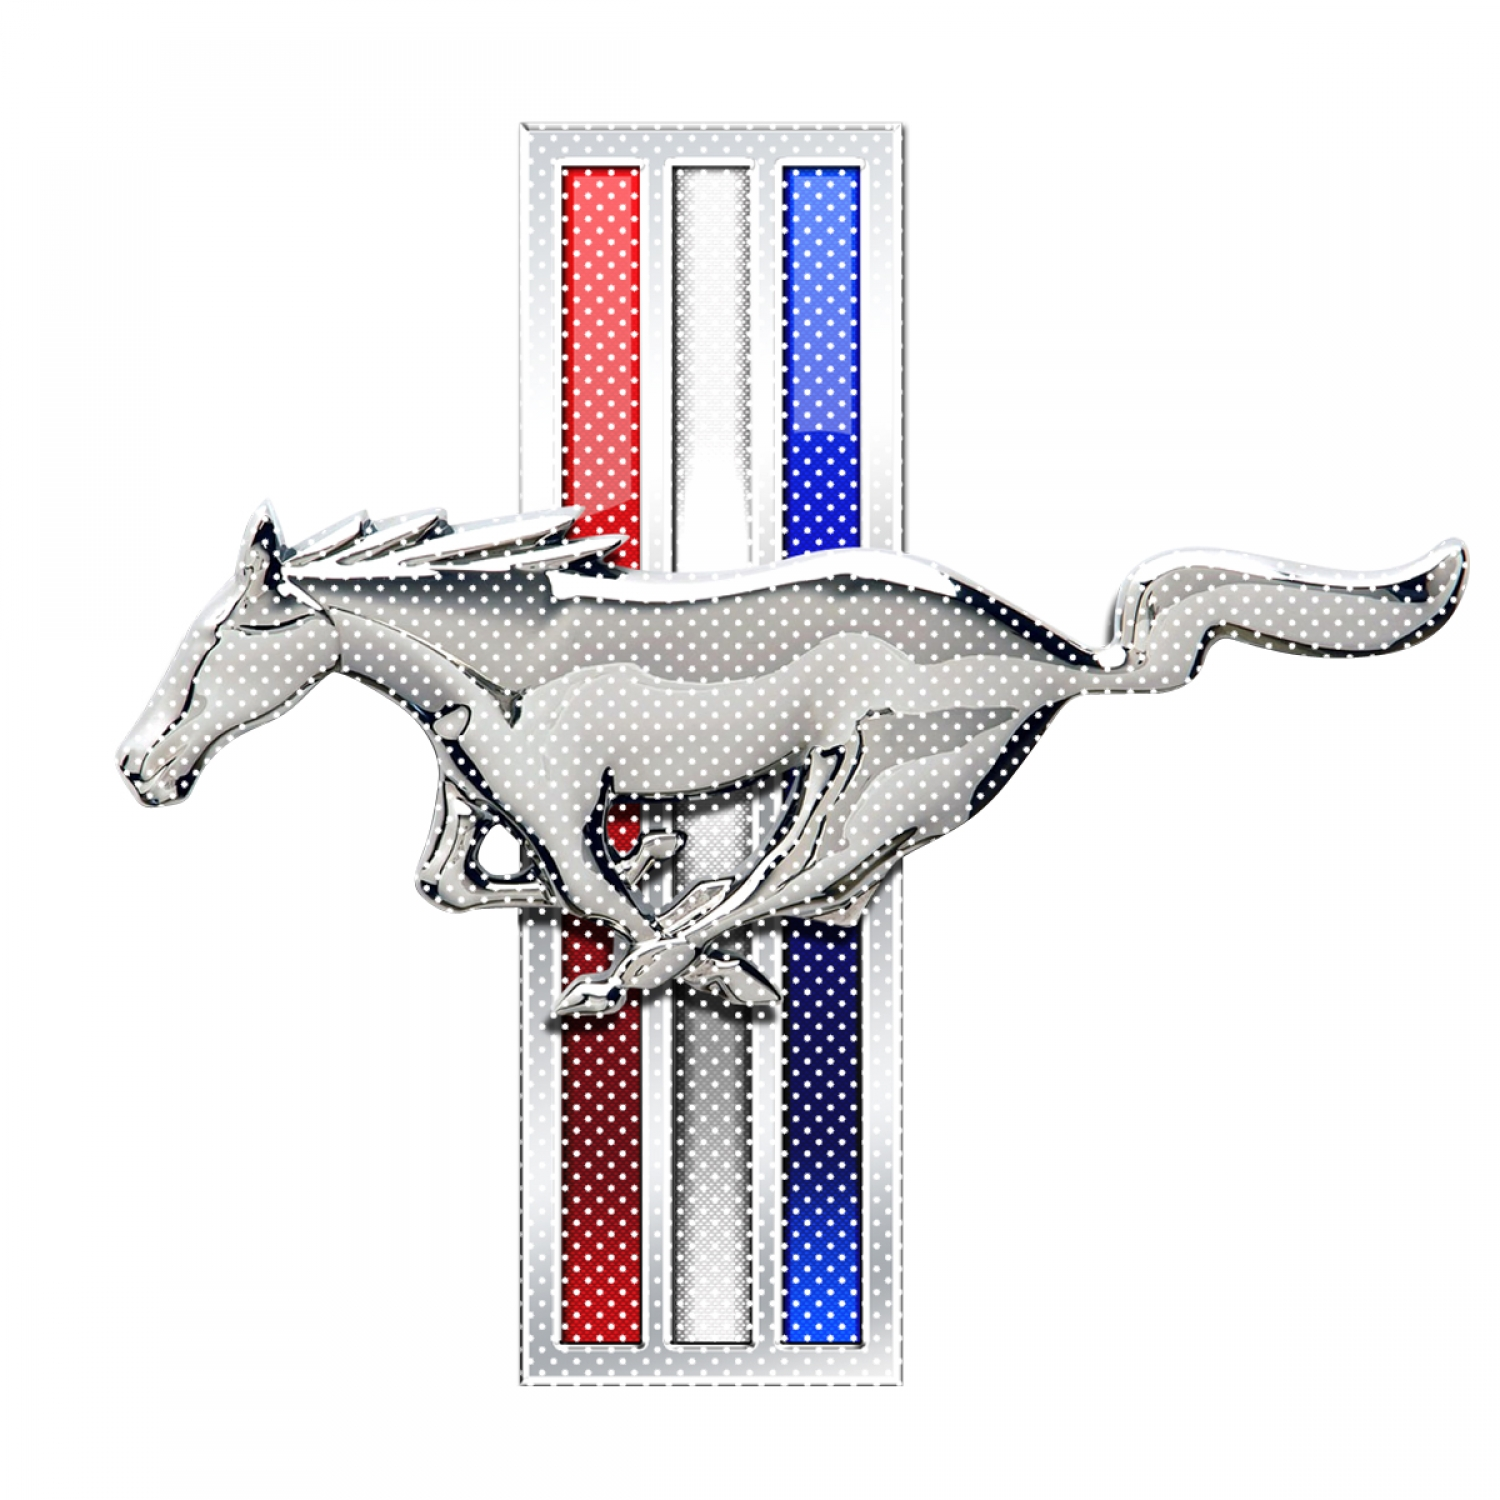 "Ford Mustang Tri-Bar Logo 12"" 3M Perforated Unobstructed View Window Graphic Decorative Decal"